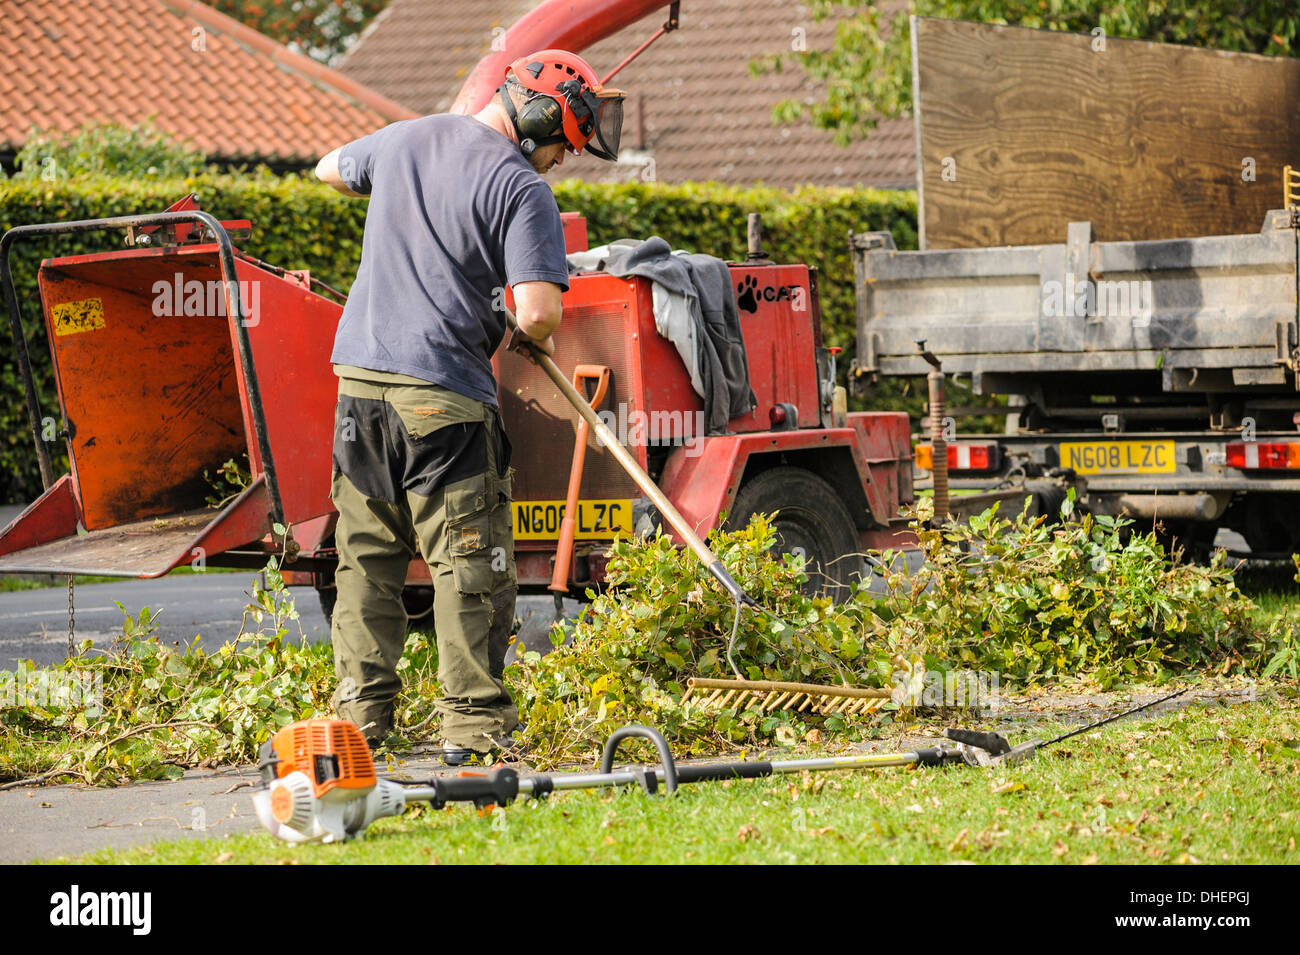 Side view of a tree surgeon in a hard hat raking up hedge trimmings outdoors outside garden maintenance. - Stock Image